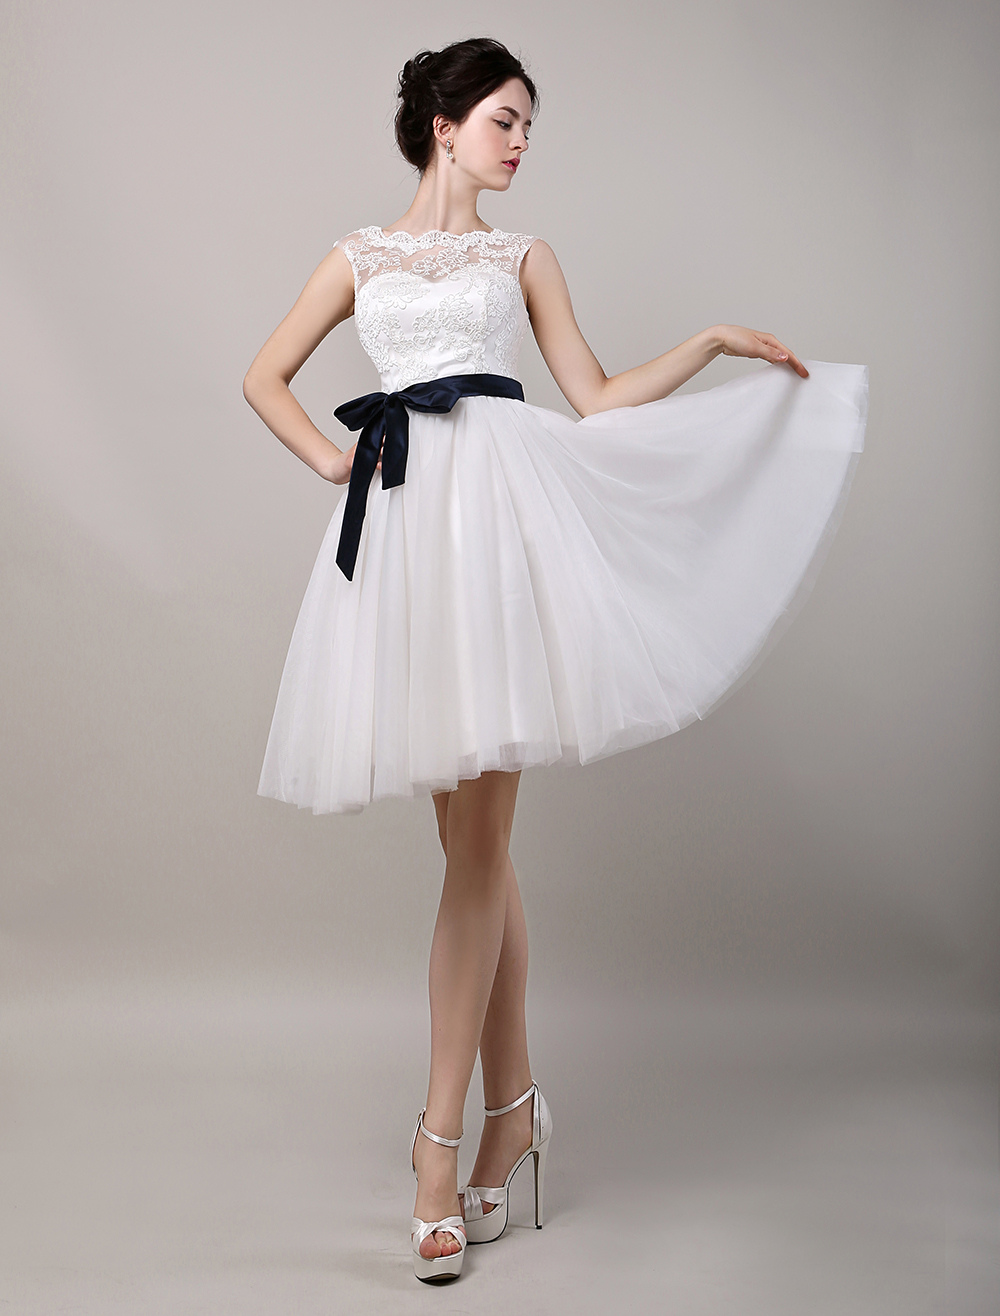 Buy A-Line Illusion Neckline Lace Bodice Knee-Length Tulle Wedding Dress With Satin Sash for $128.69 in Milanoo store